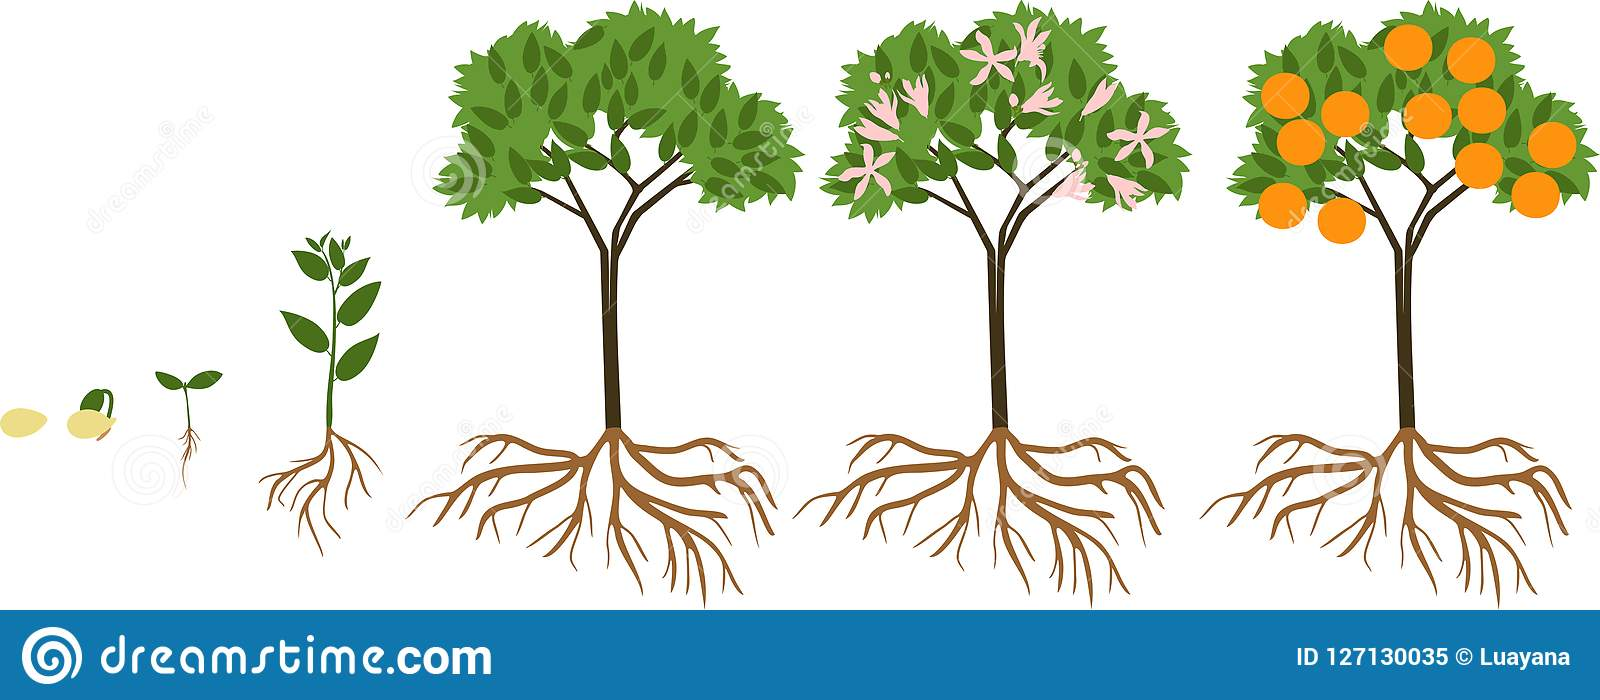 Life Cycle Of Orange Tree. Stages Of Growth From Seed And Sprout To Plant  With Fruits Stock Vector - Illustration of green, reproduction: 127130035Dreamstime.com